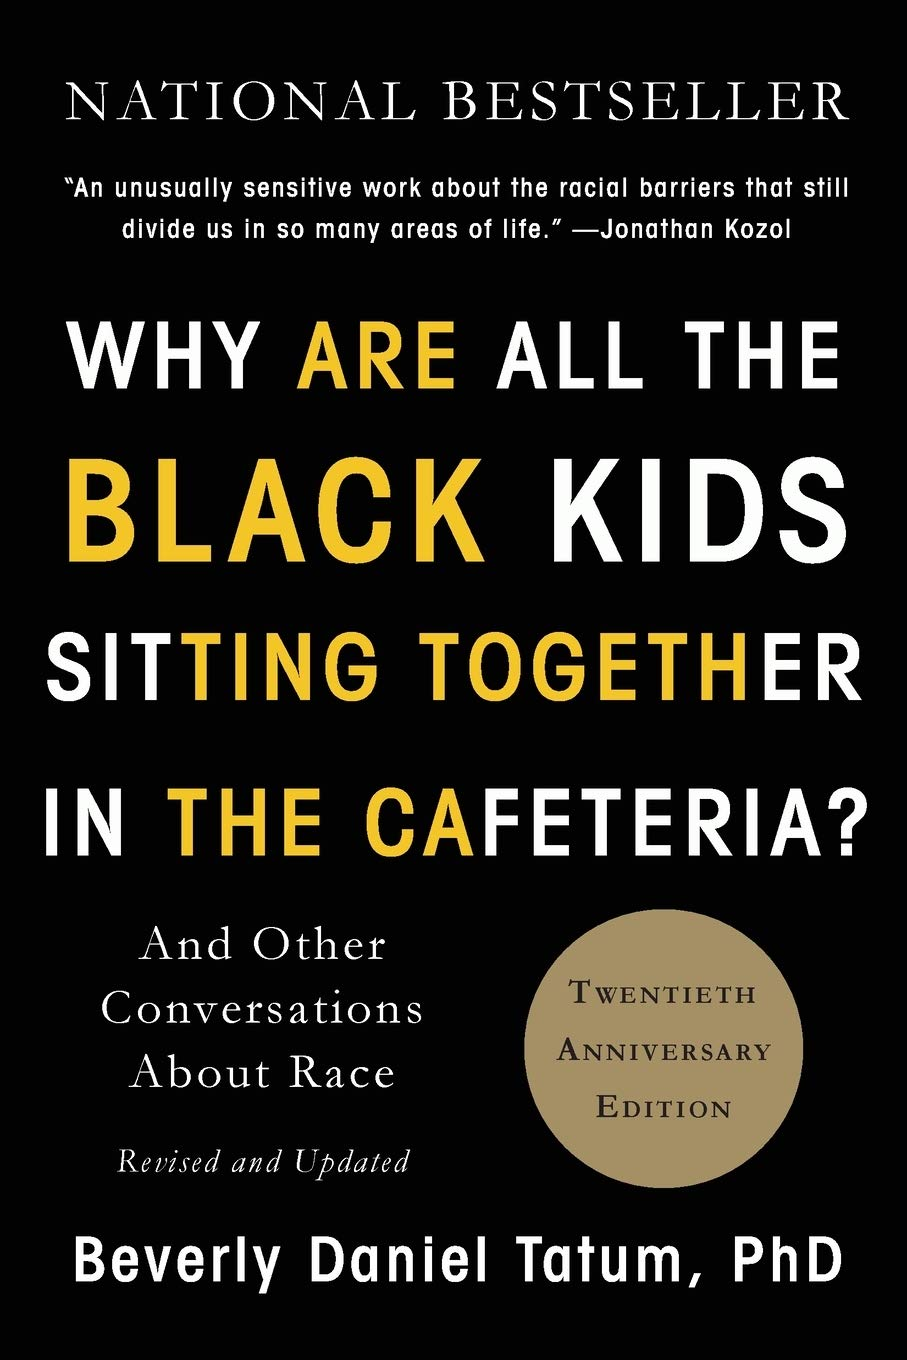 Why Are All the Black Kids Sitting Together in the Cafeteria?: And Other Conversations About Race by Beverly Daniel Tatum